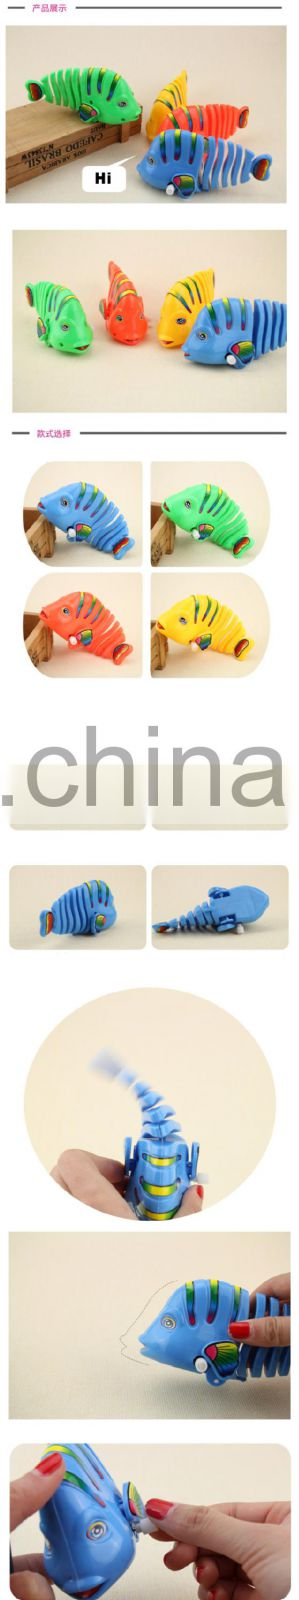 Clockwork Wind-up Colorful Mini Cute Robotic Fish Toy Activity Game Toddler Baby Gifts